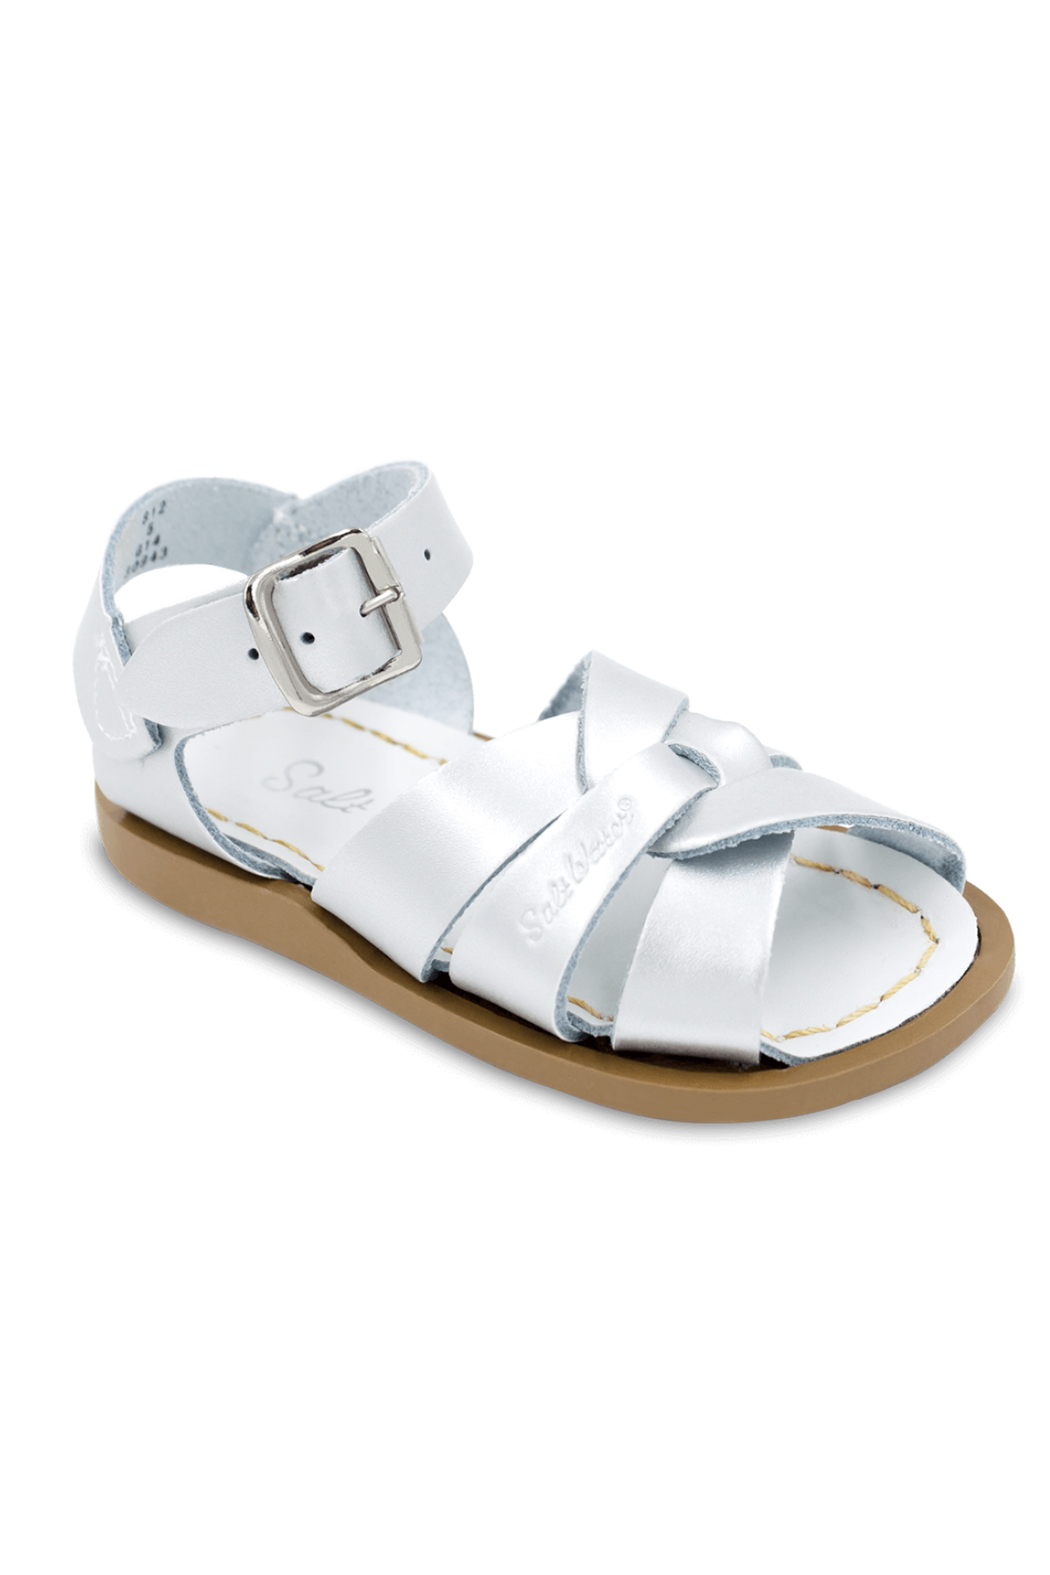 Hoy Shoes Salt Water Sandals Toddler/Little Kids - Main Image